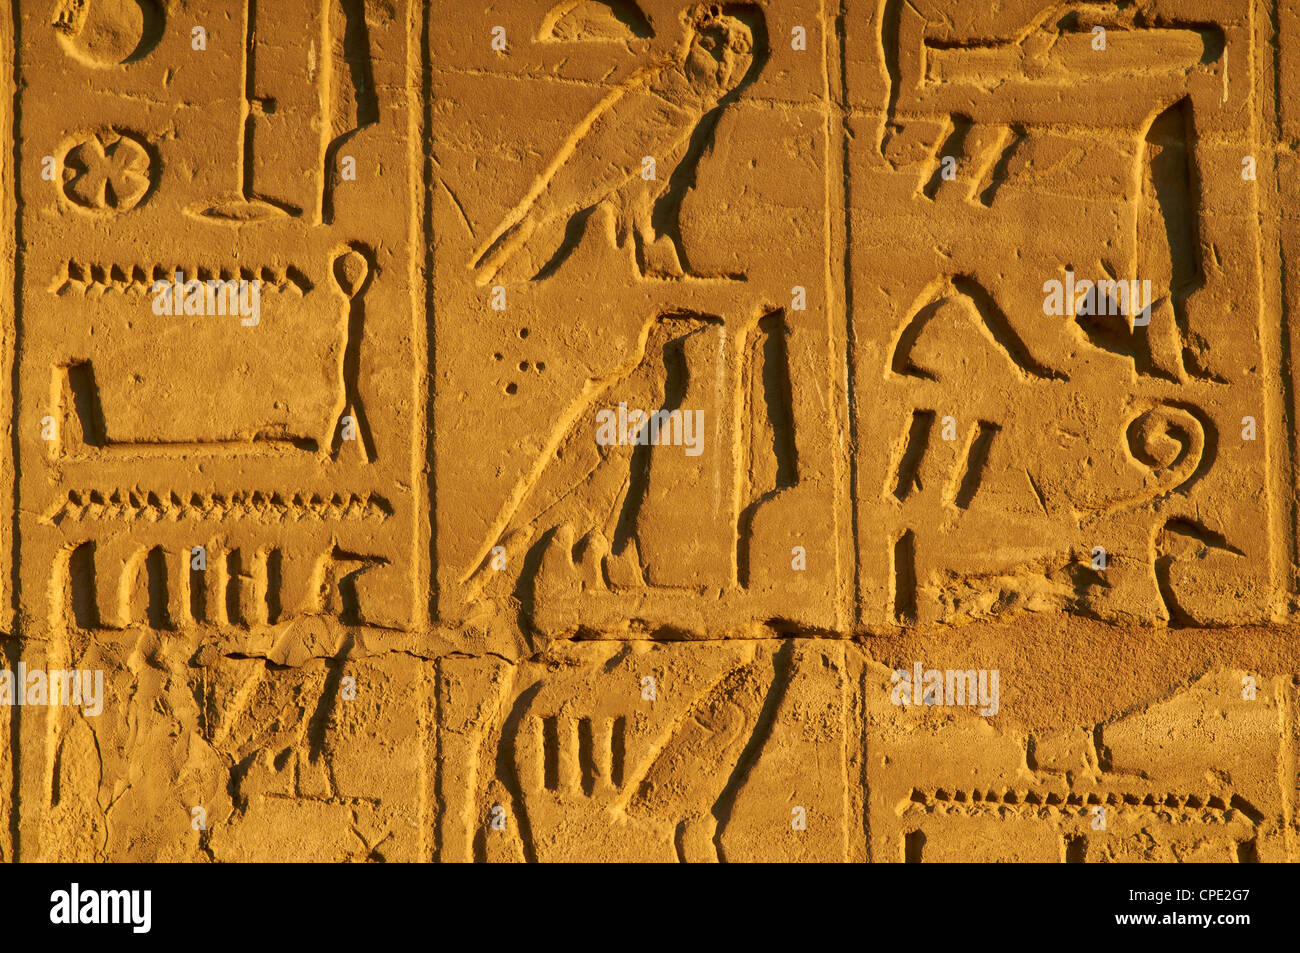 Bas relief, Temple of Luxor, Thebes, UNESCO World Heritage Site, Egypt, North Africa, Africa - Stock Image